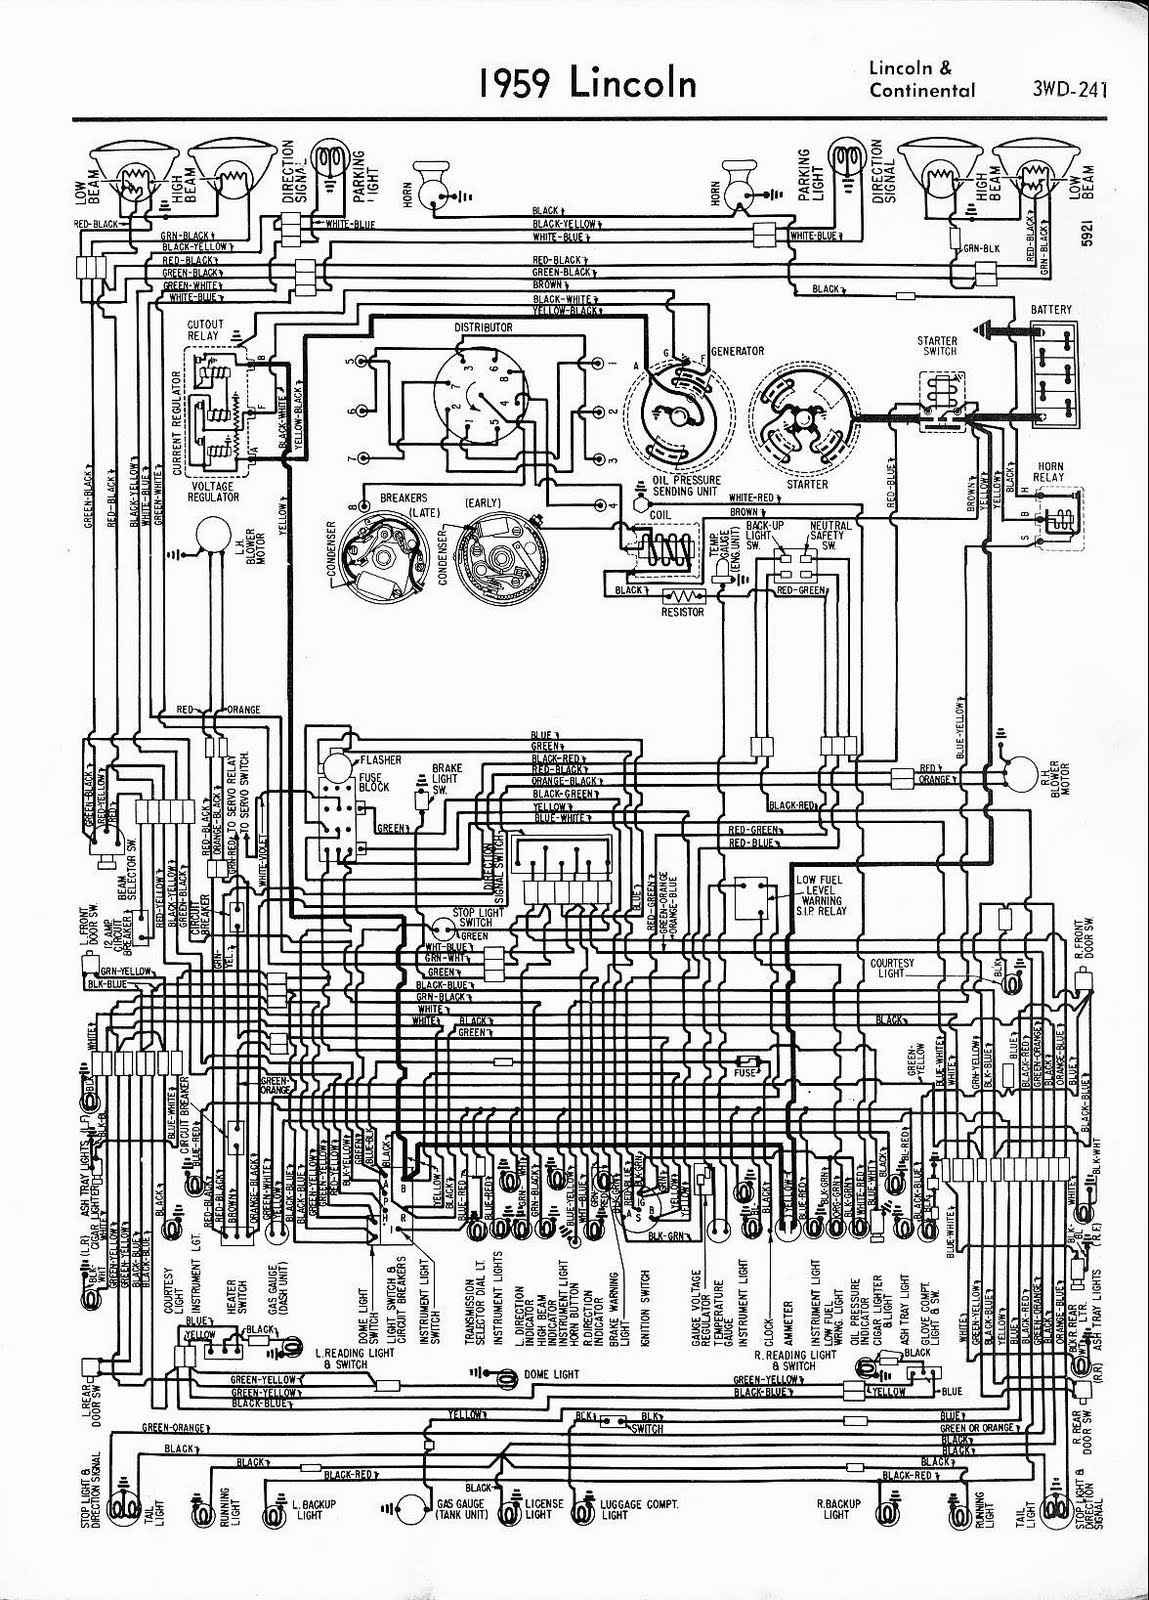 1960 lincoln engine diagram wiring library. Black Bedroom Furniture Sets. Home Design Ideas